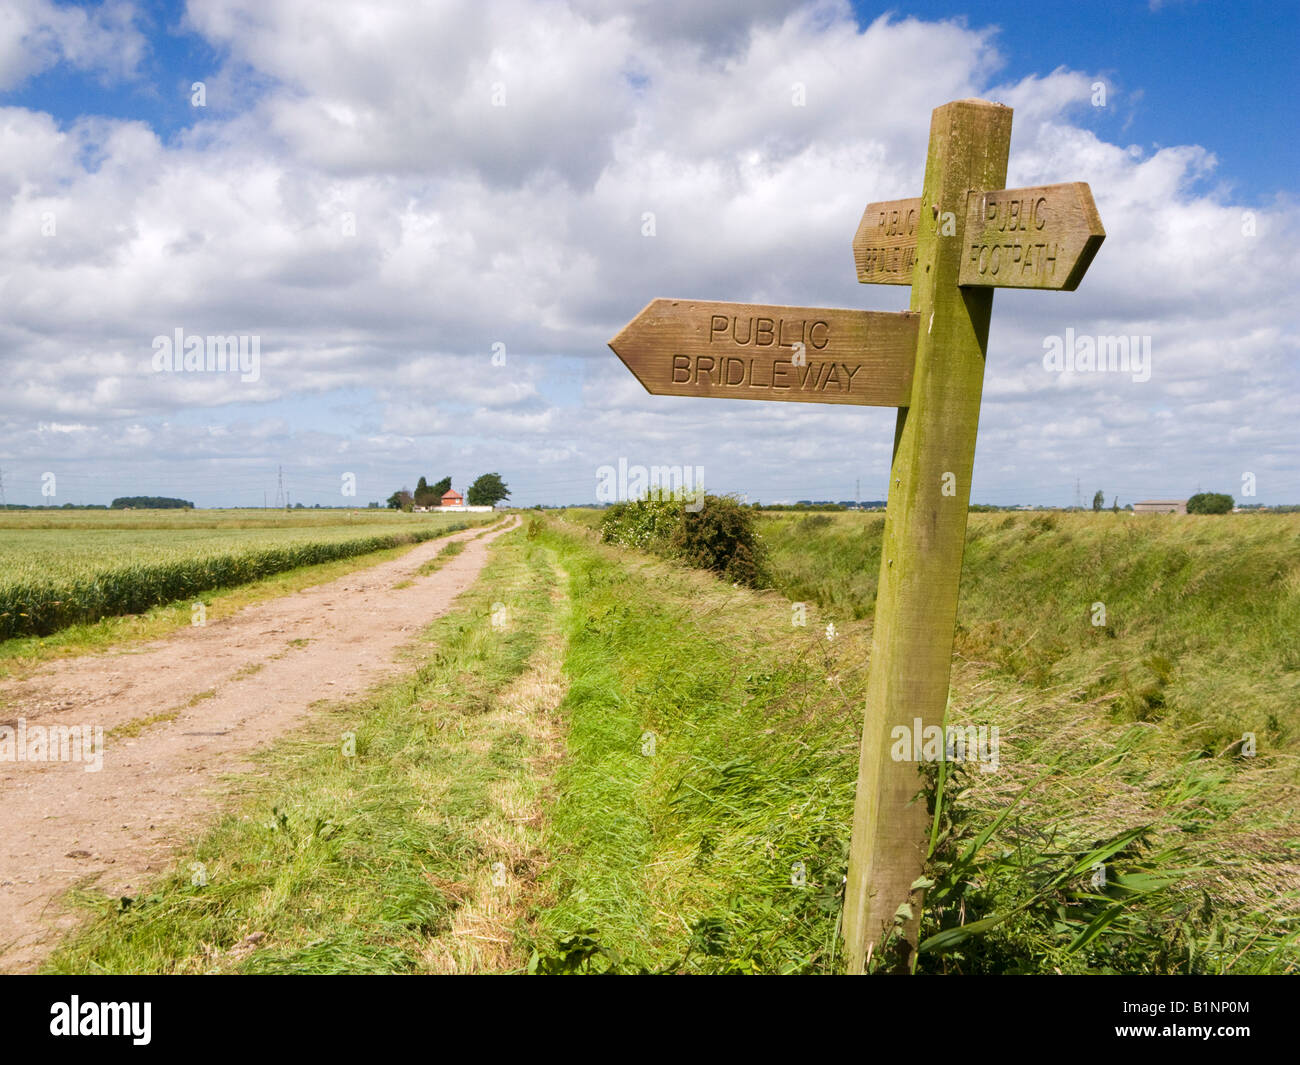 Wooden signpost indicating direction of public footpaths and bridleways, East Yorkshire, England UK - Stock Image